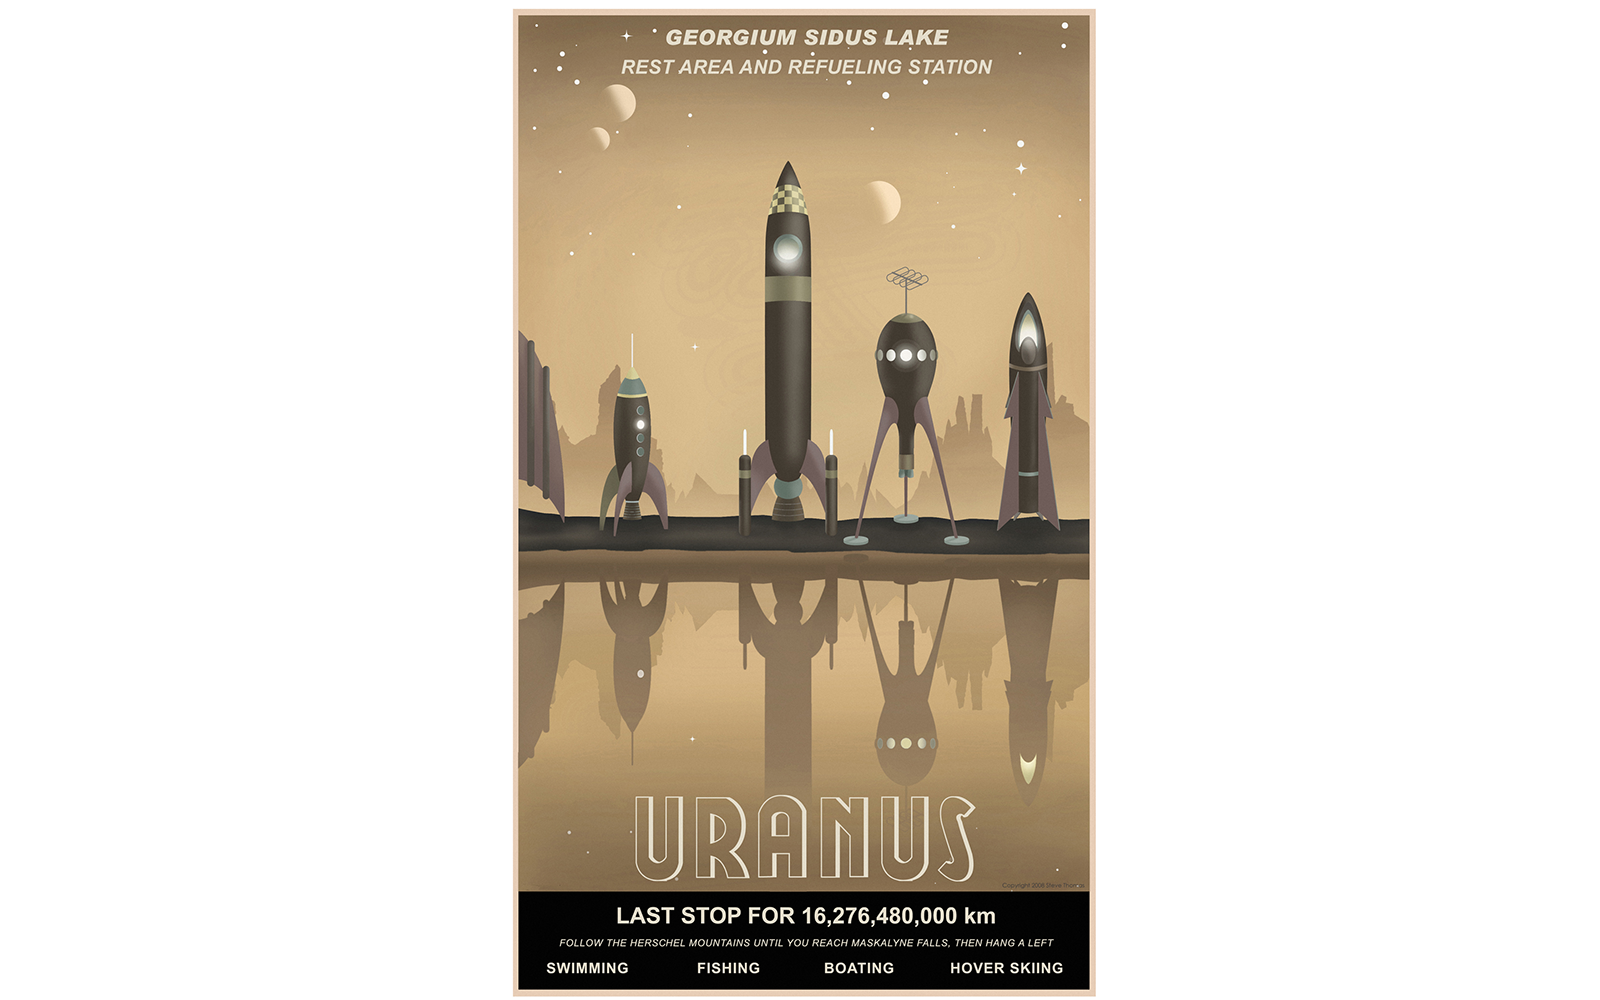 Vintage Space Travel Posters Travel Leisure - Retro style posters from nasa imagine how the future of space travel will look